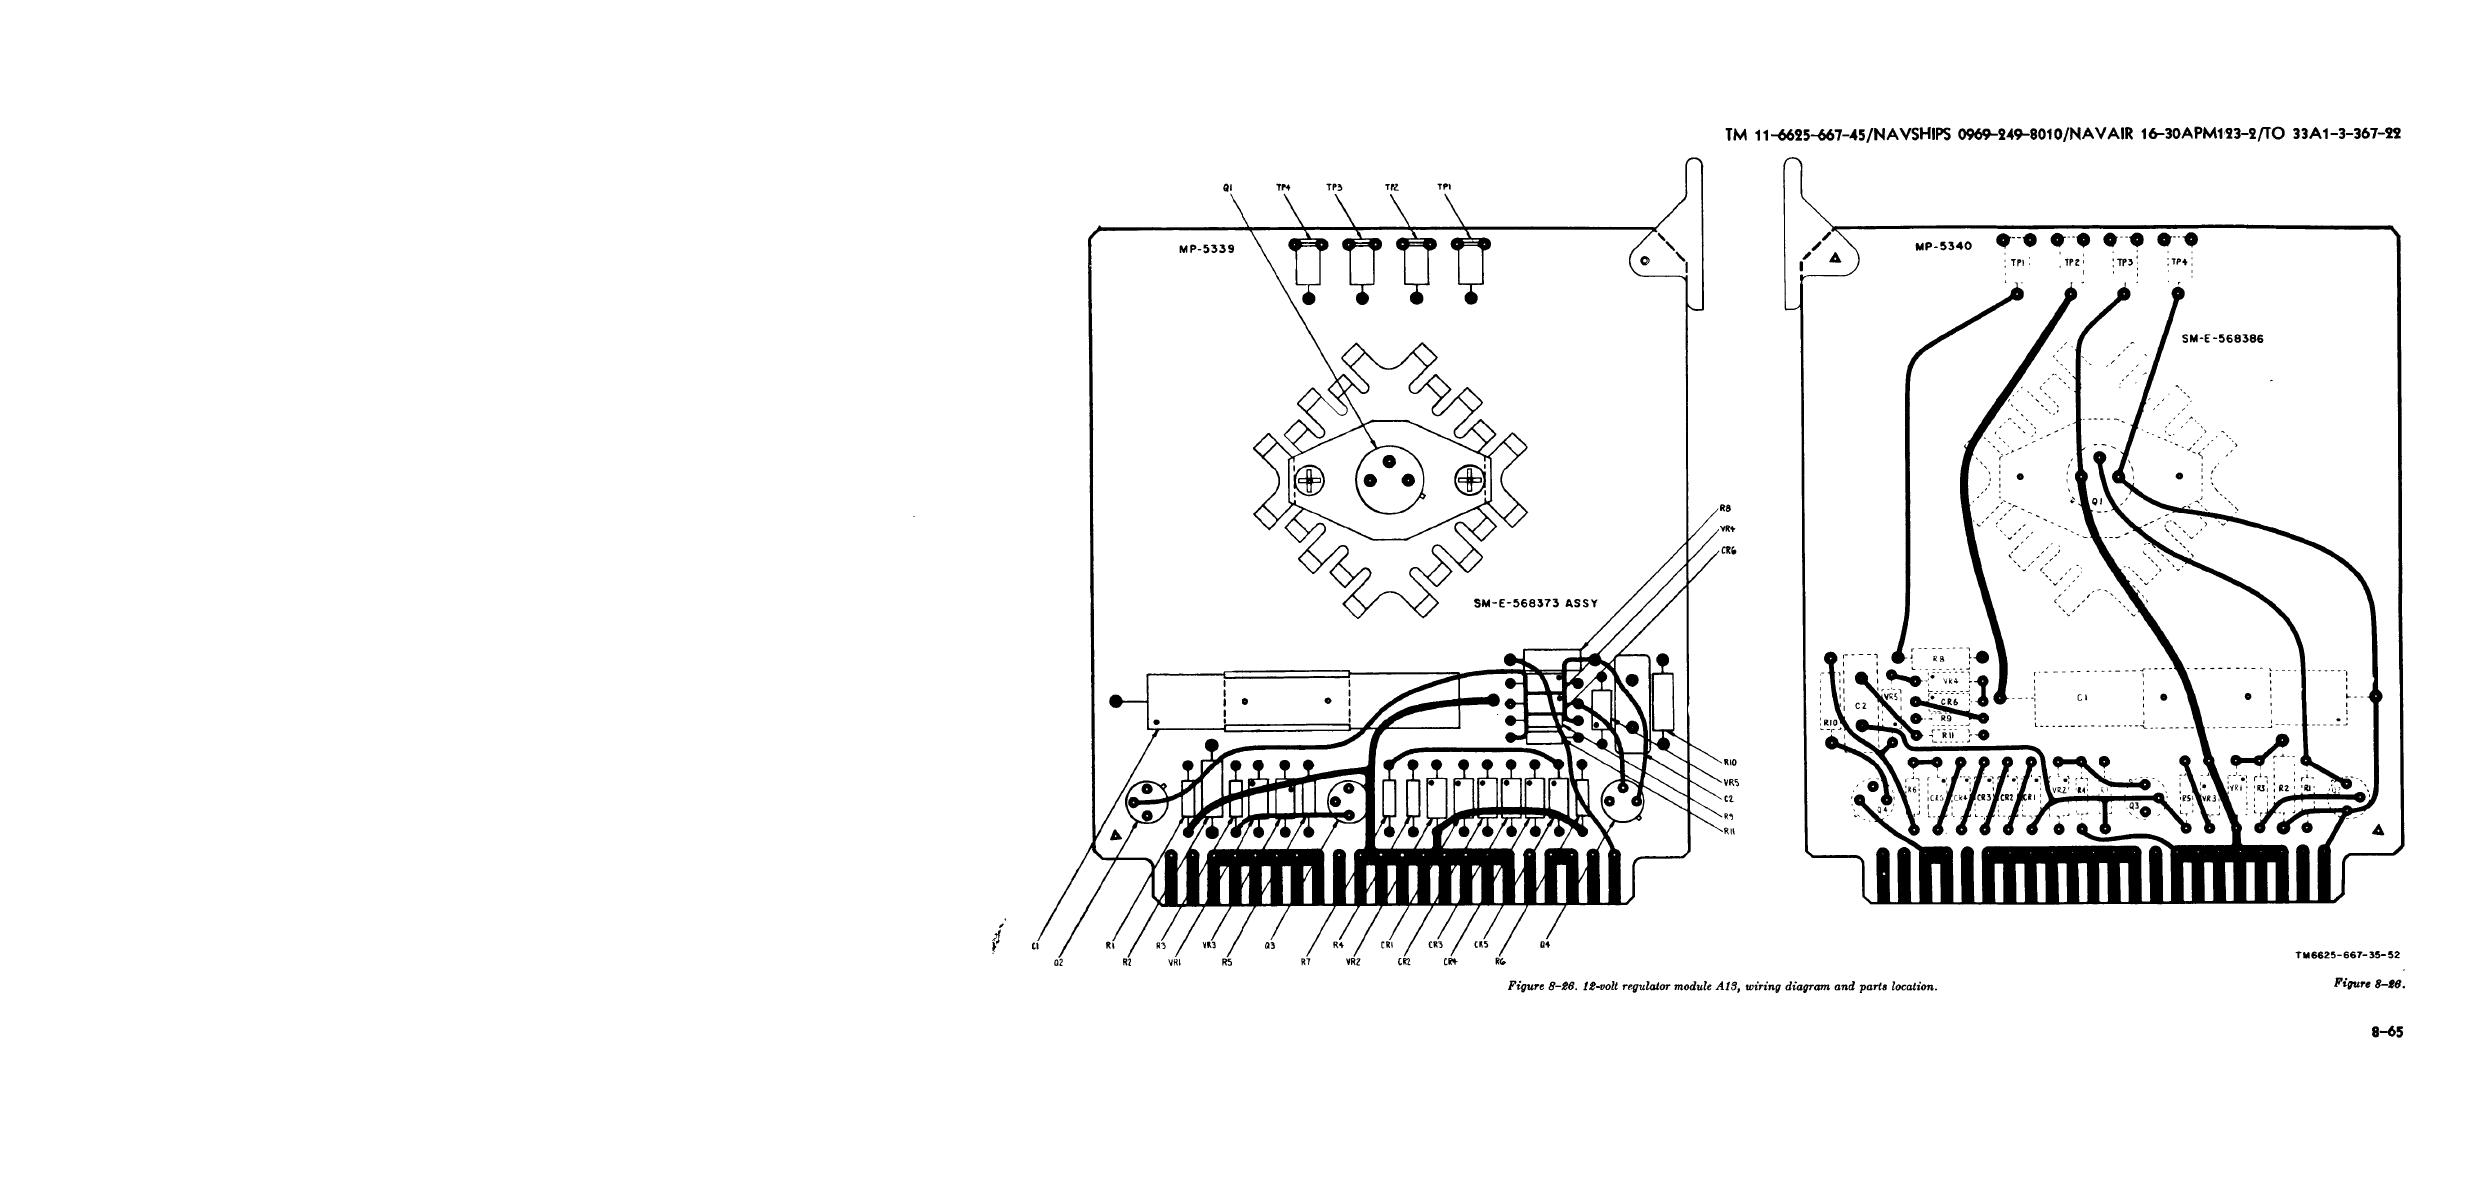 FIGURE 8-26. 12-VOLT REGULATOR MODULE A13, WIRING DIAGRAM